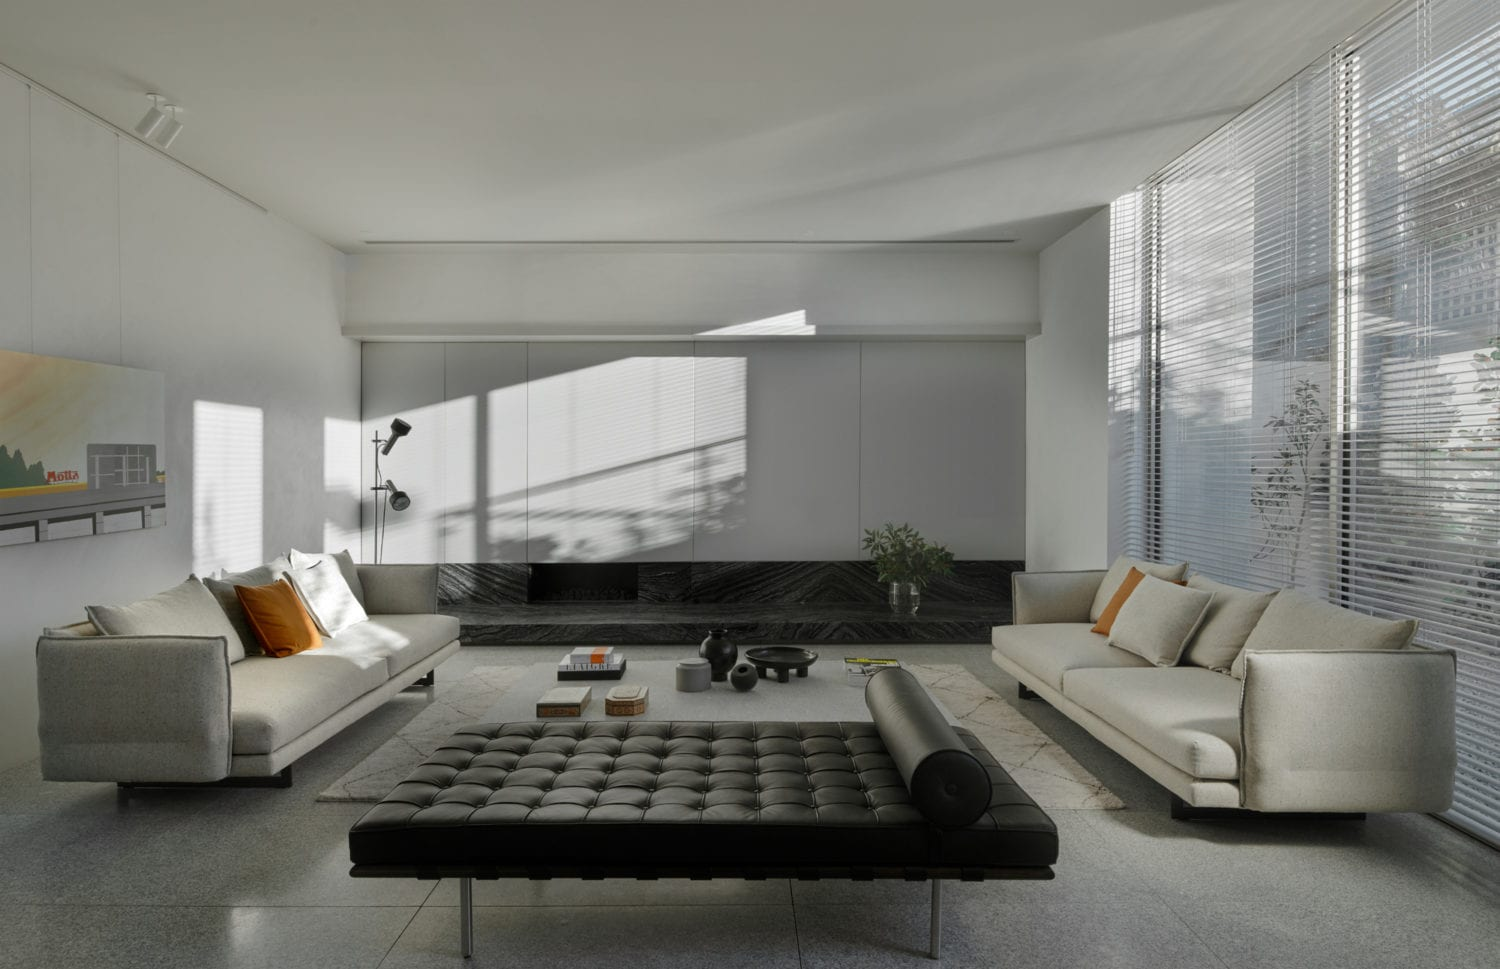 Sld Residence In Toorak Melbourne By Davidov Partners Architects Yellowtrace 10